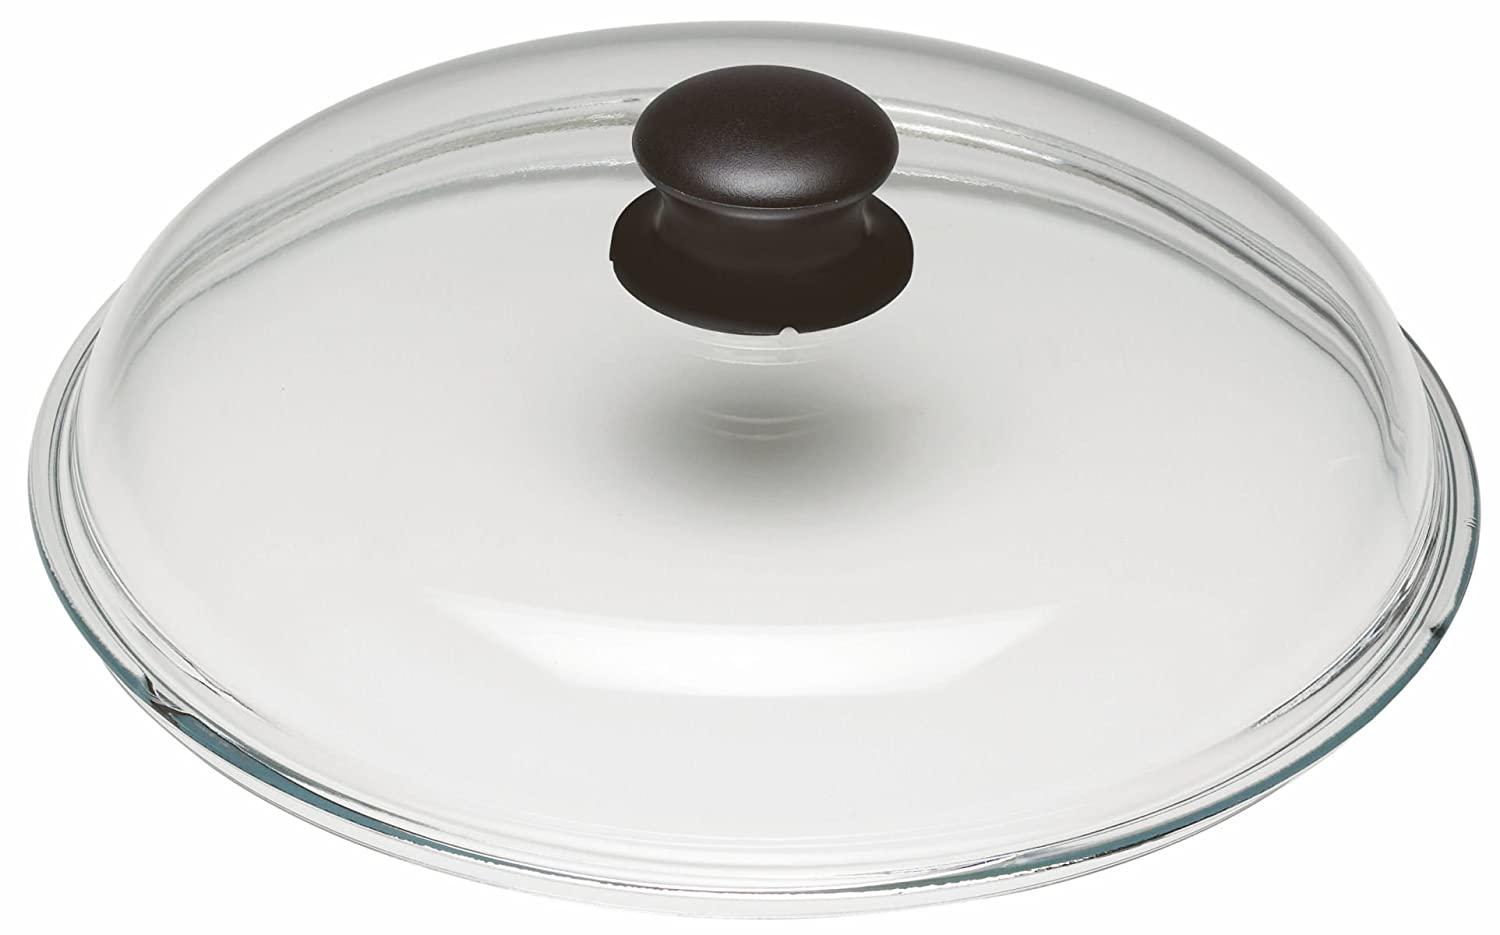 KitchenCraft Ballarini Curved Lid 24cm Kitchen Craft 333302.24